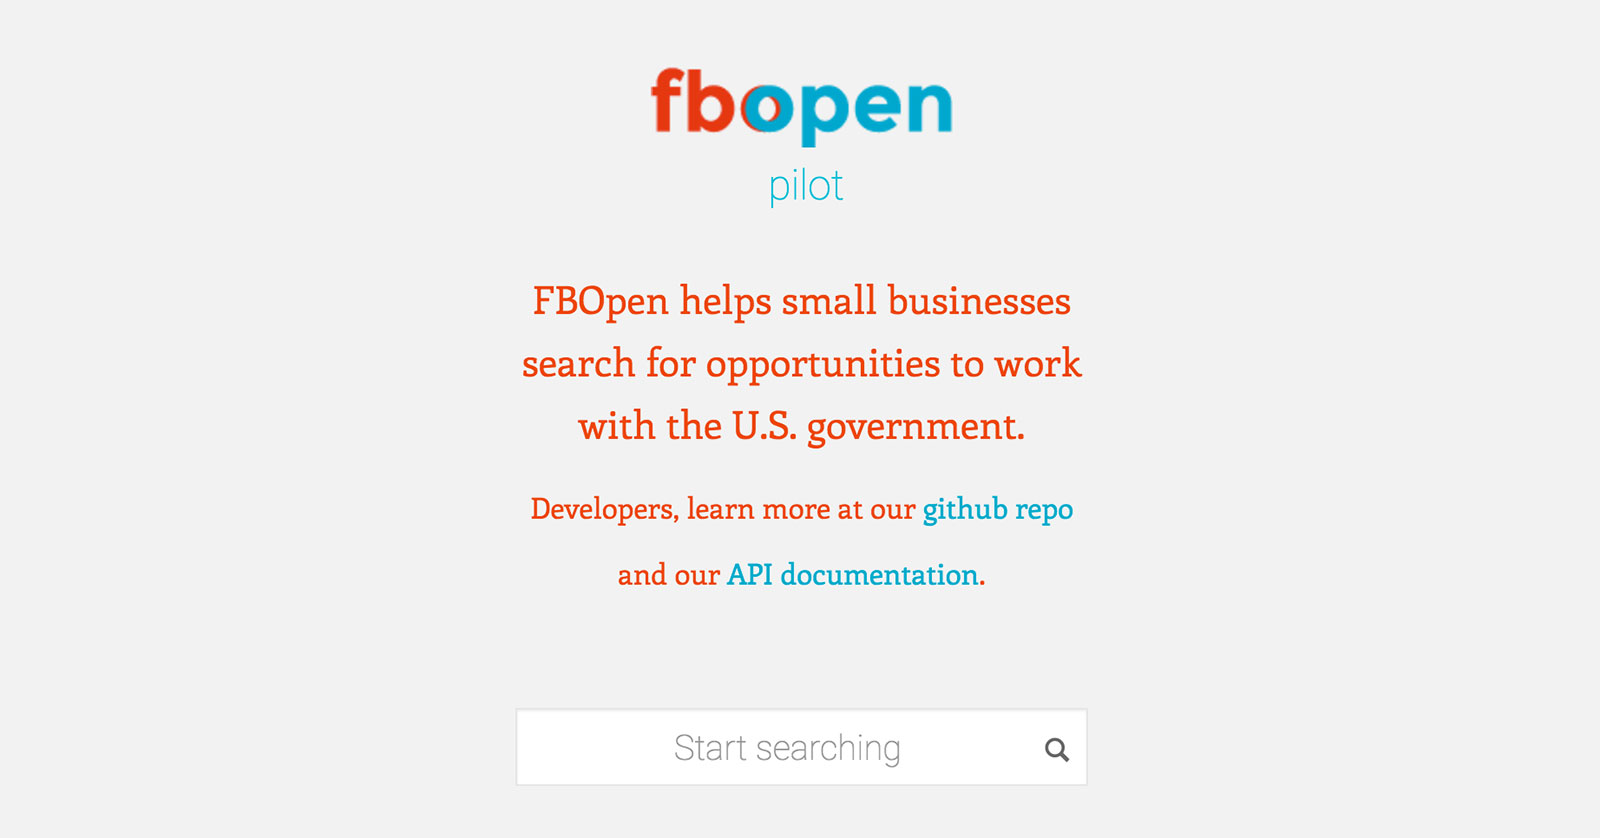 The FBopen homepage